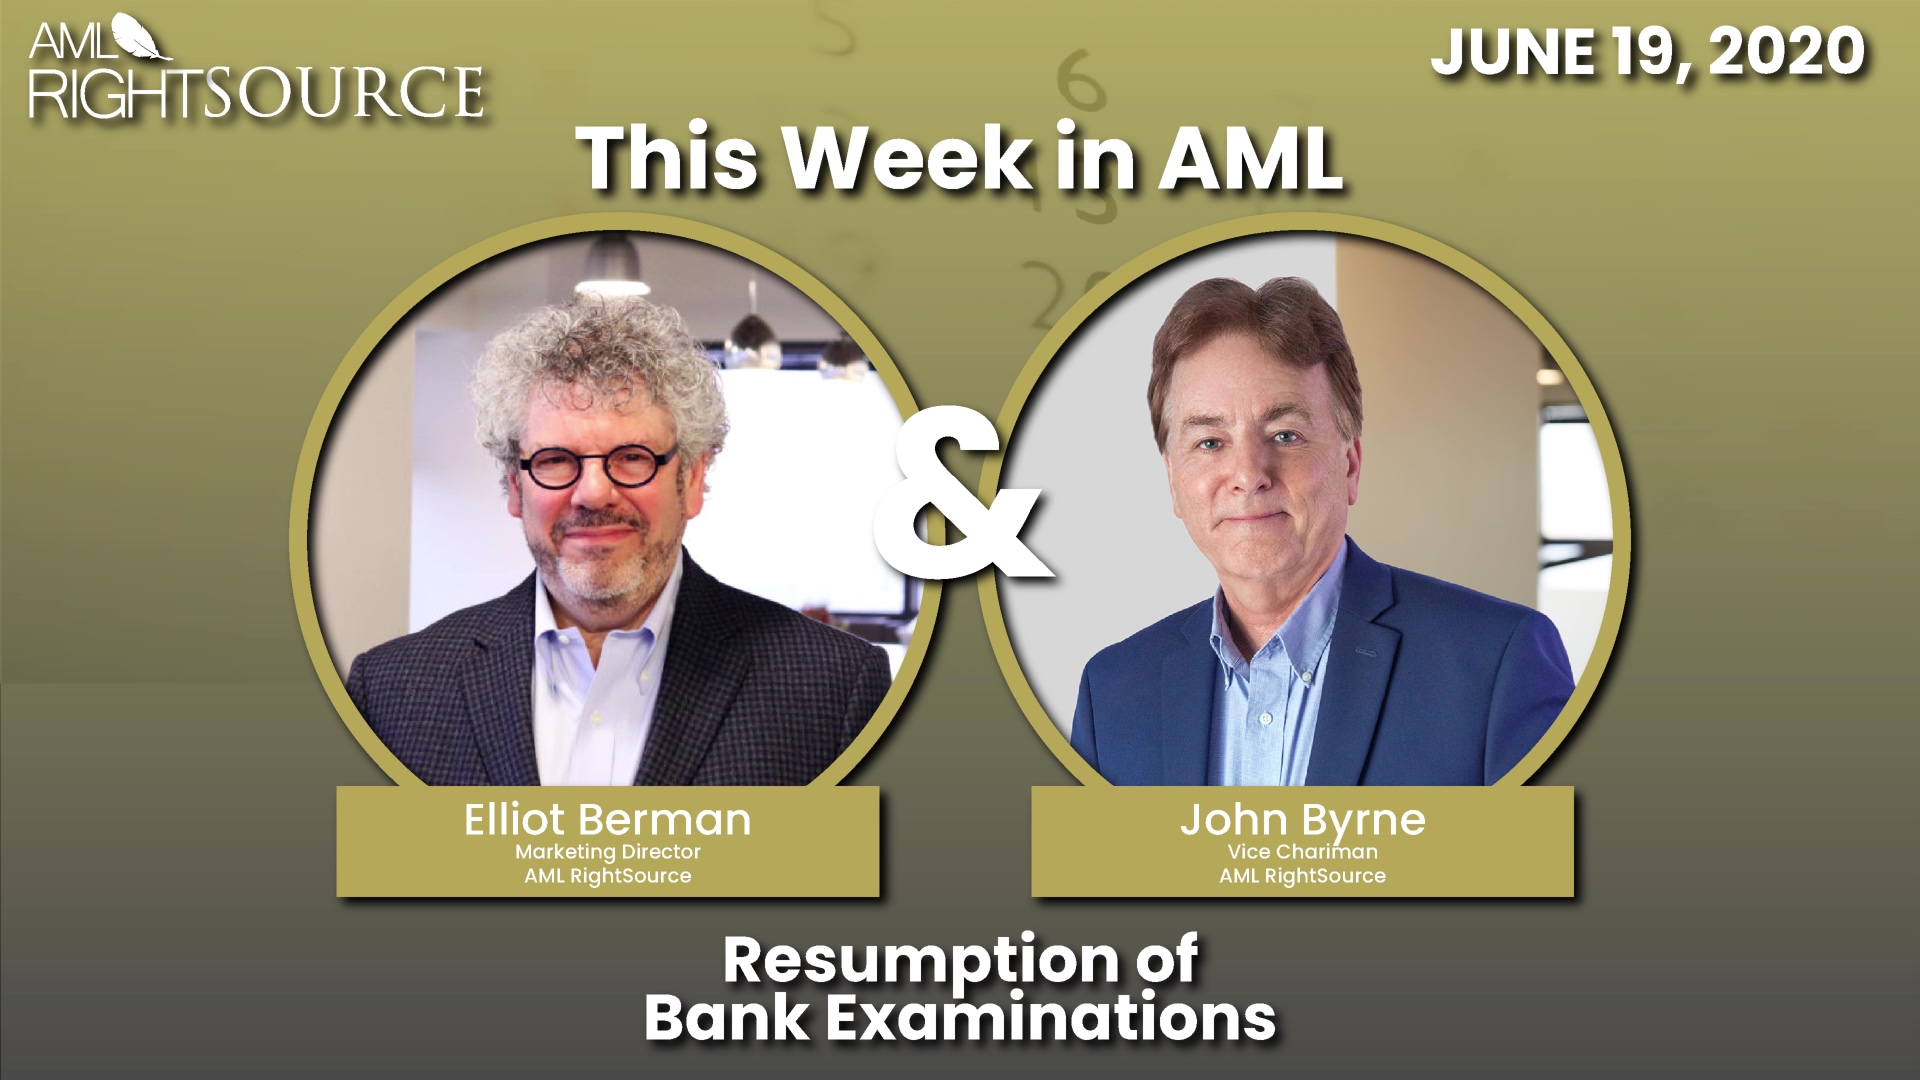 This Week in AML Resumption of Bank Examinations